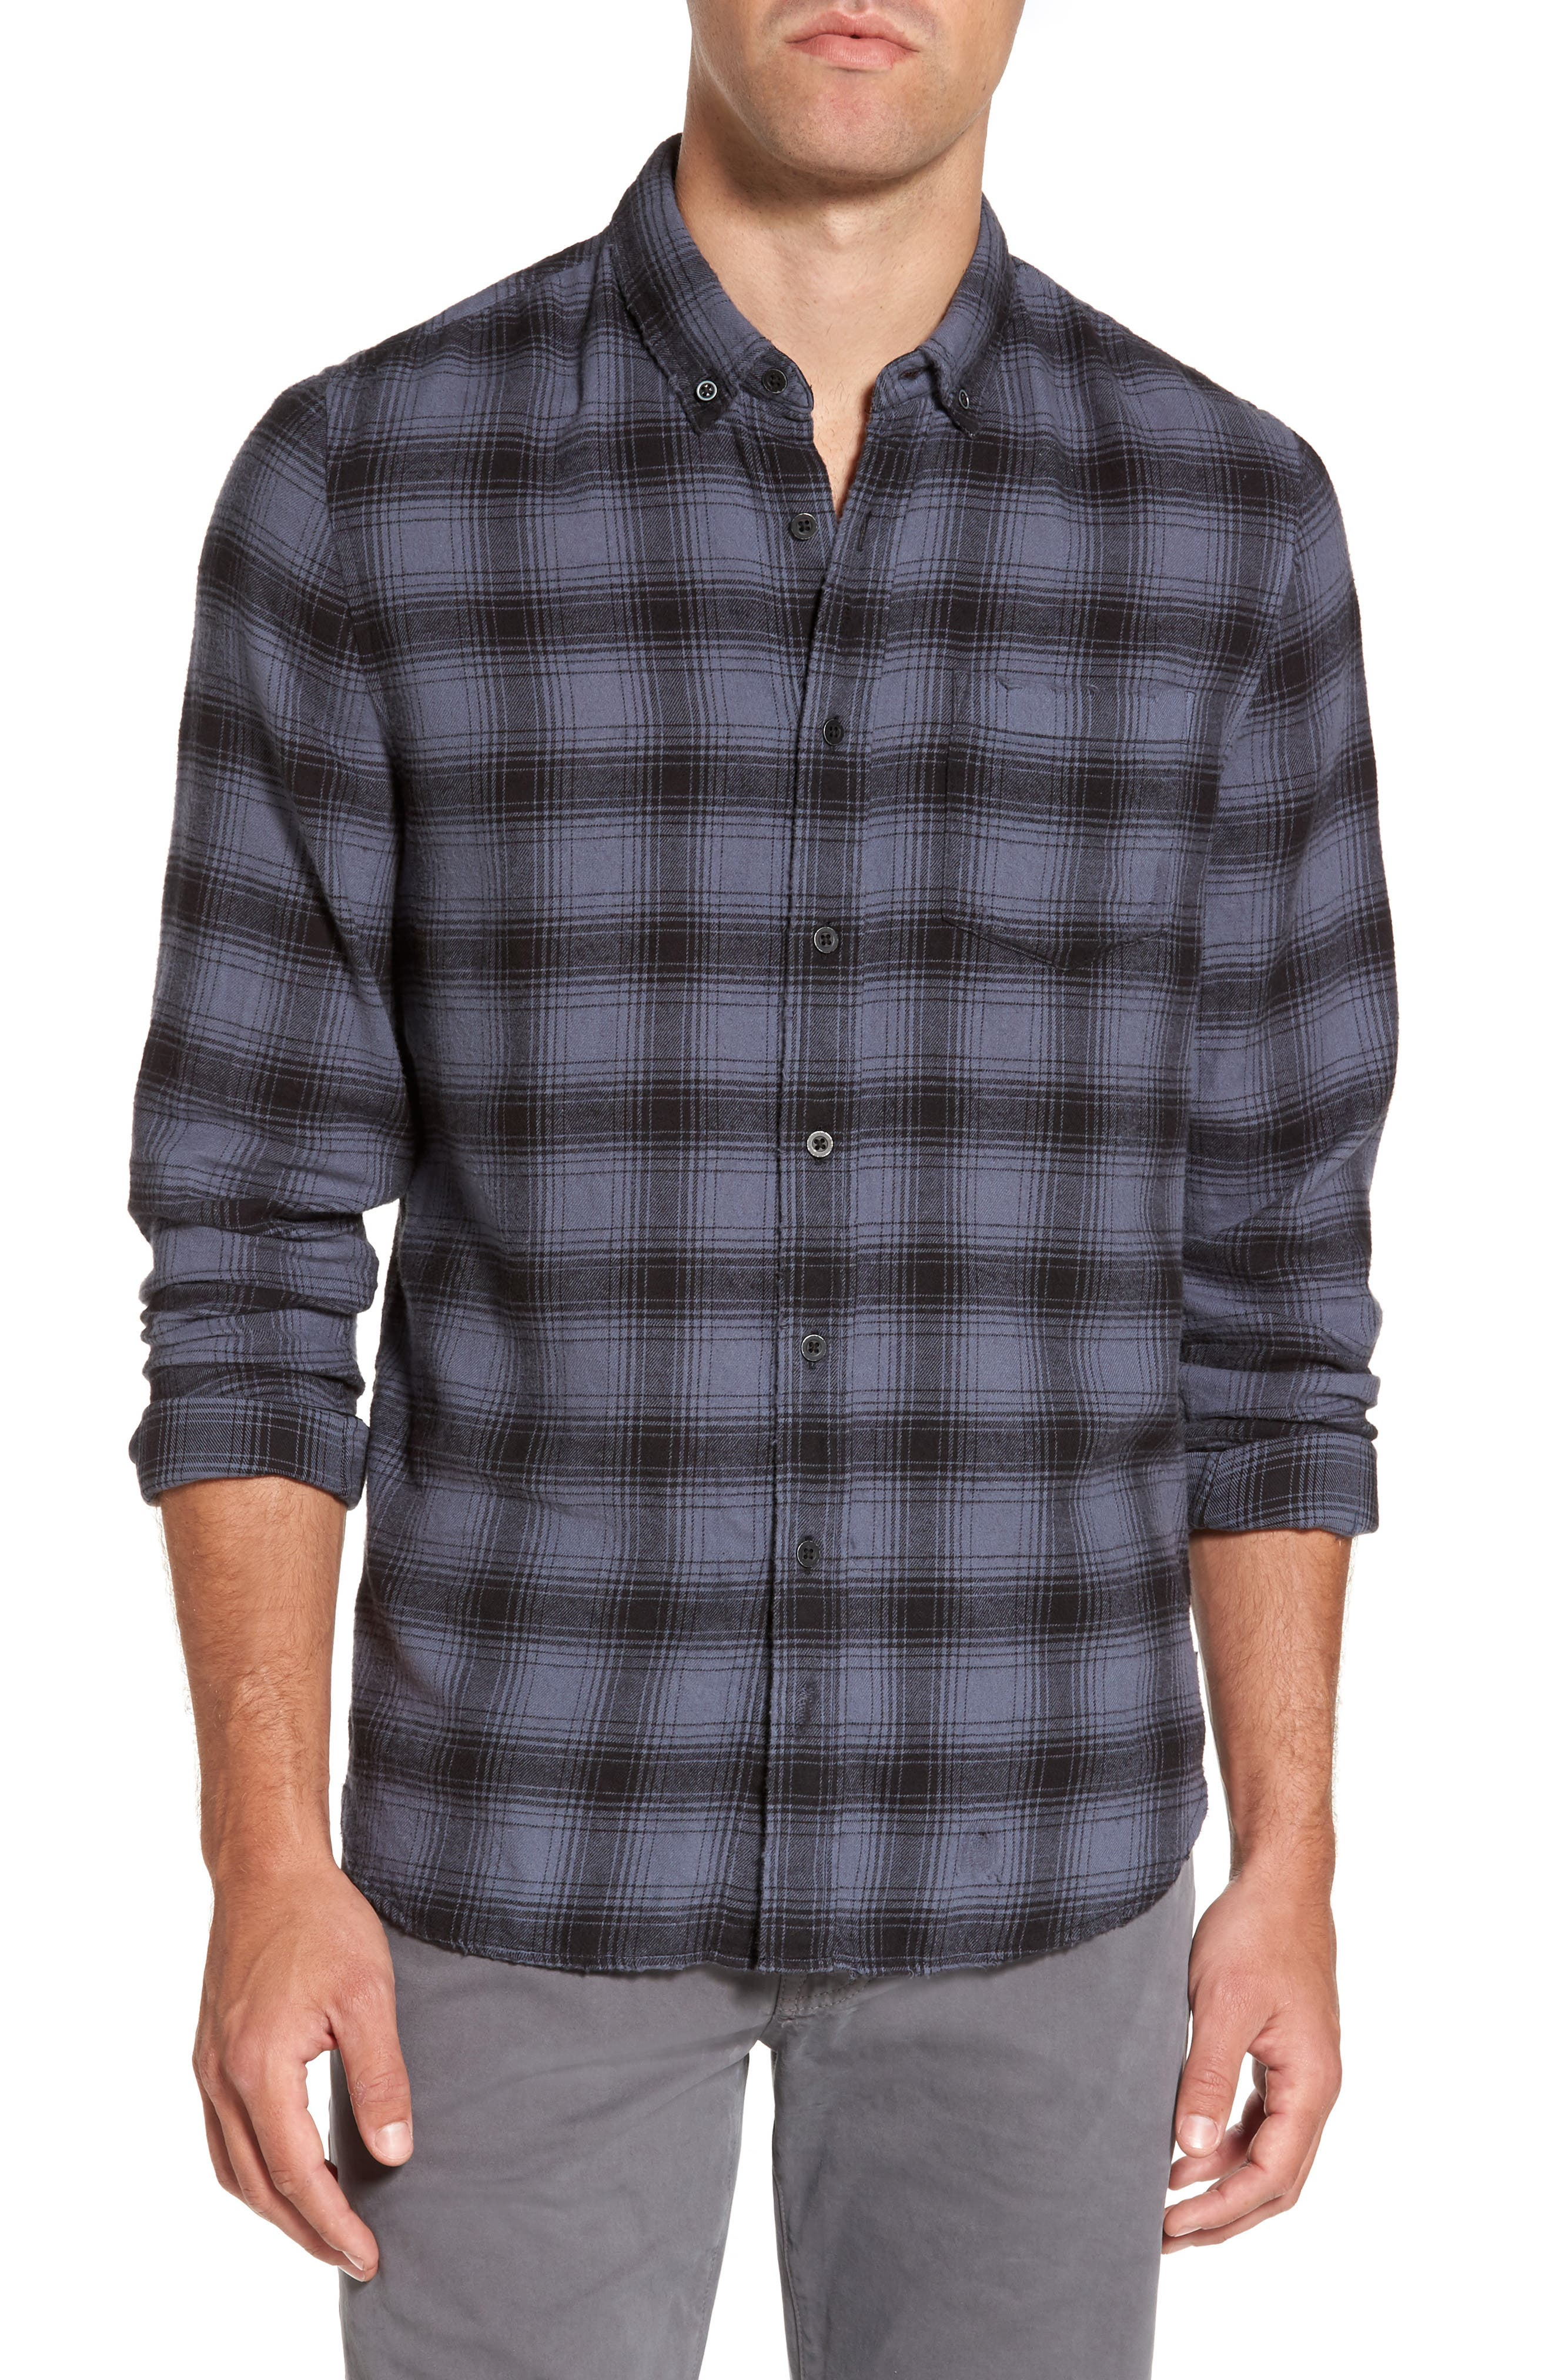 AG Grady Plaid Flannel Sport Shirt